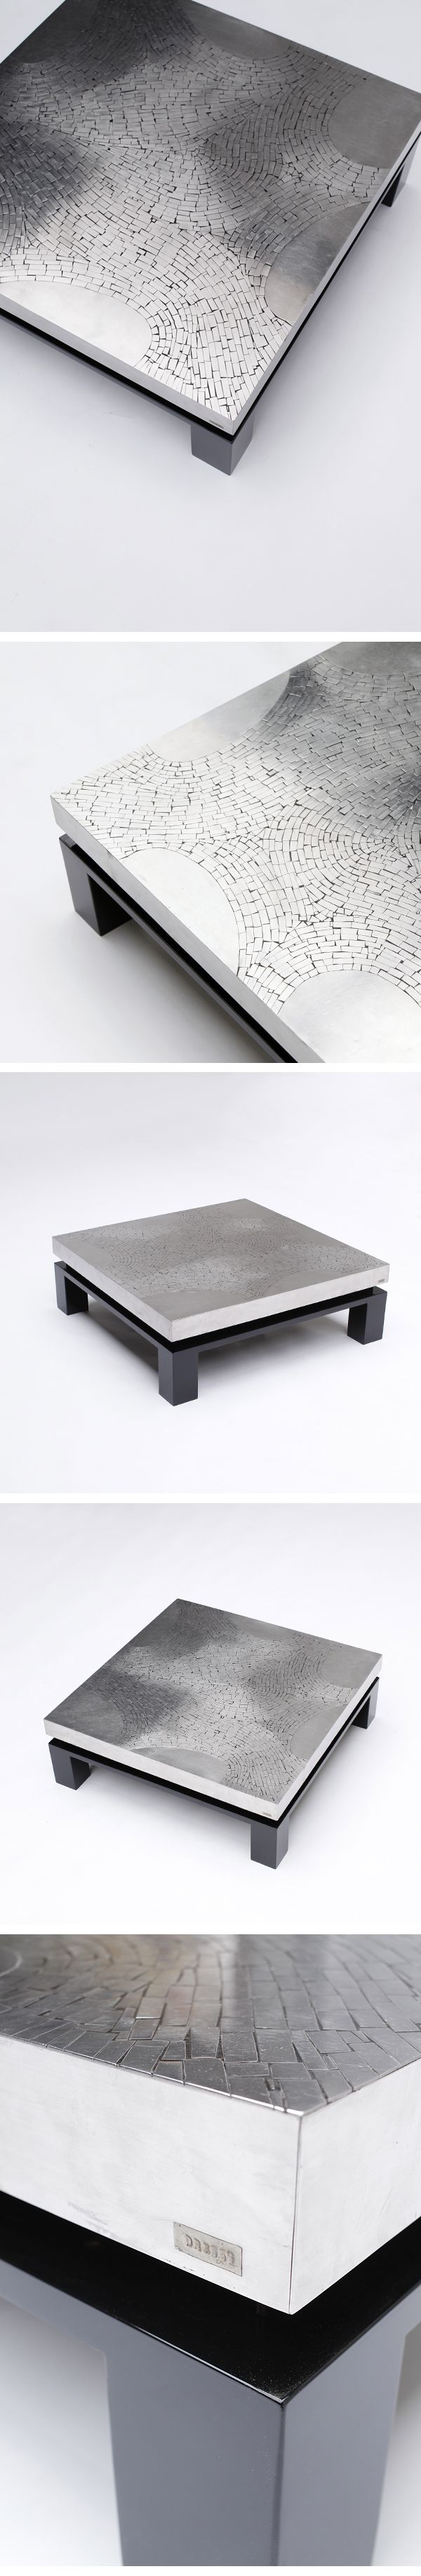 219 best Furniture Coffee Tables images on Pinterest